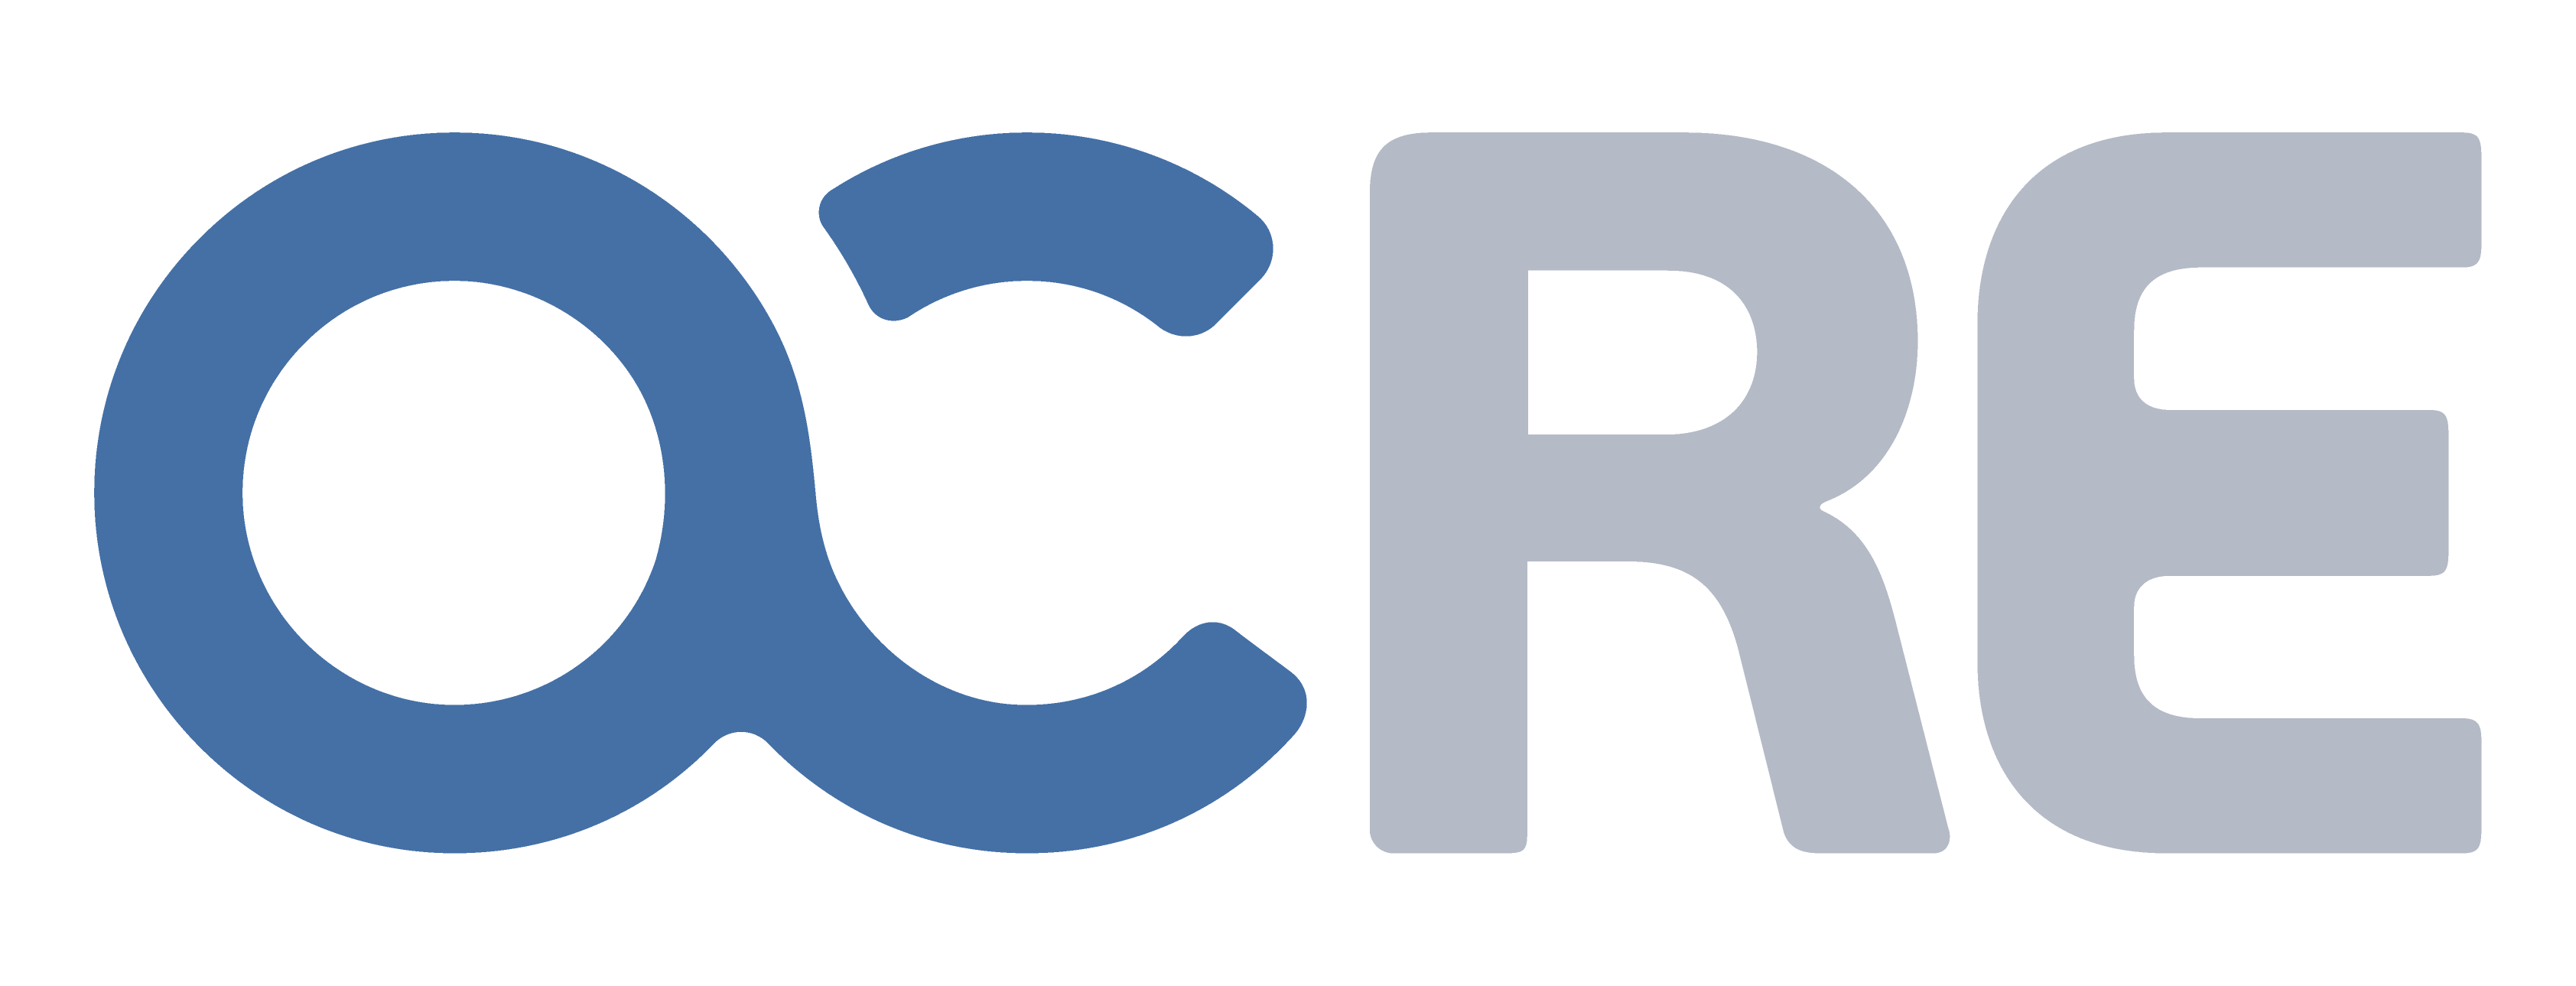 OCRE_only_logo.png